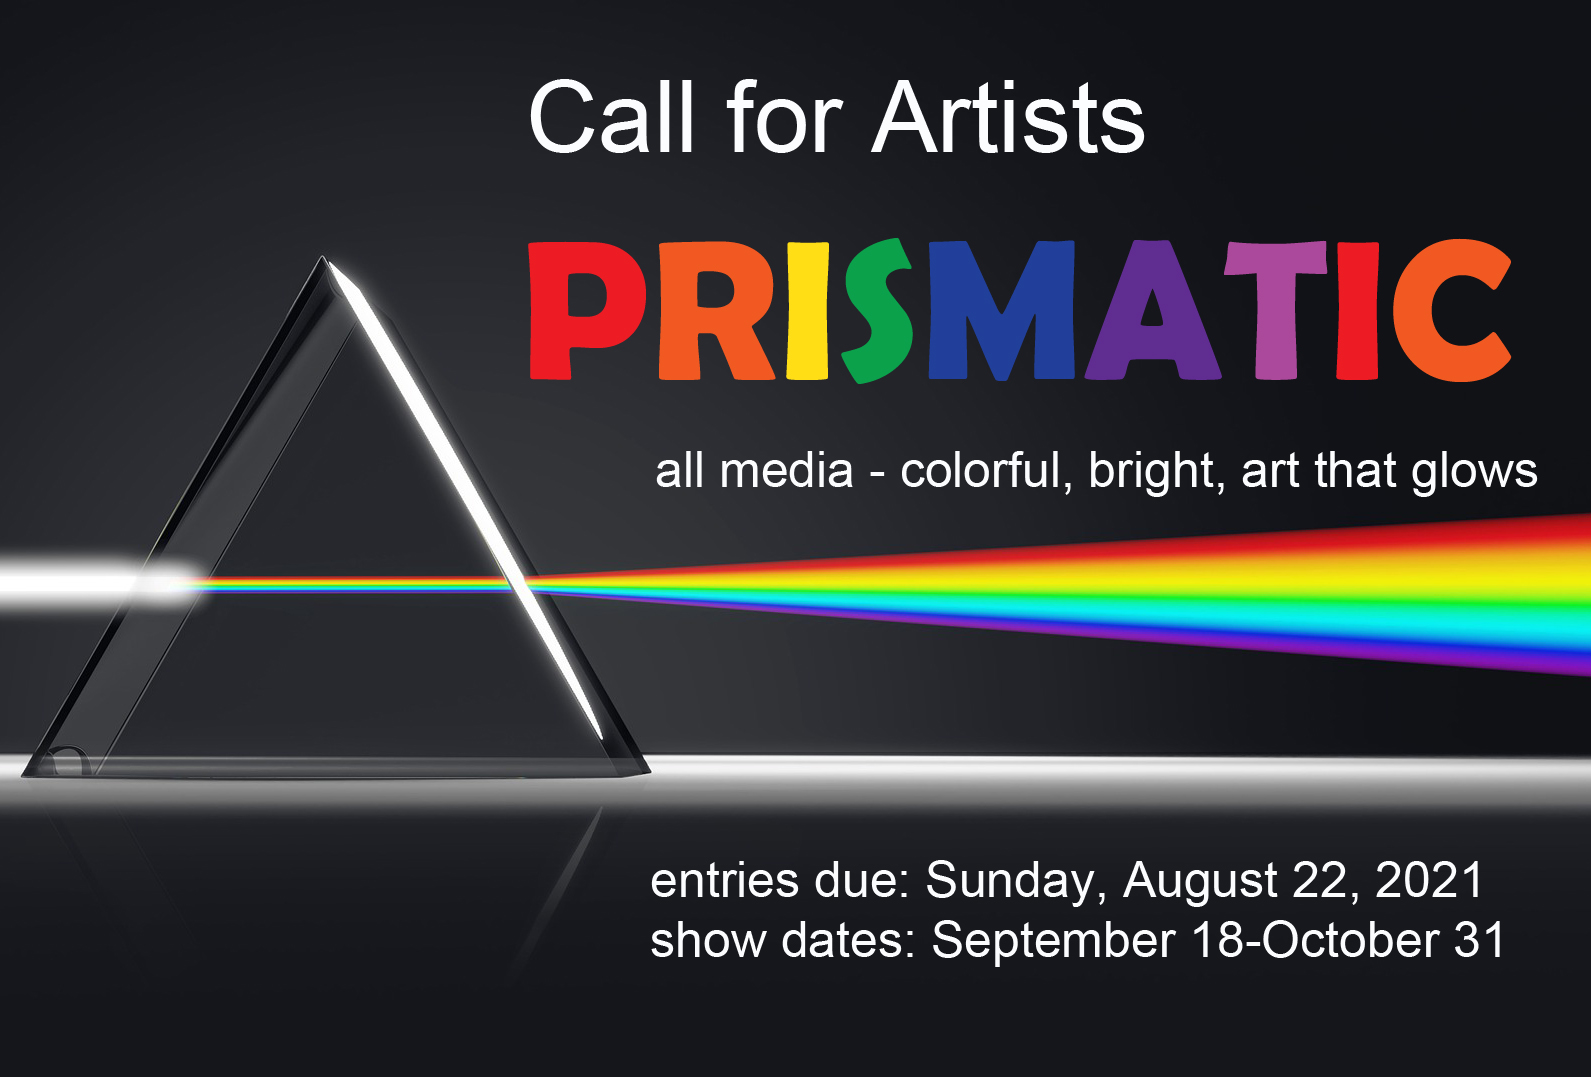 CALL FOR ARTISTS – Prismatic